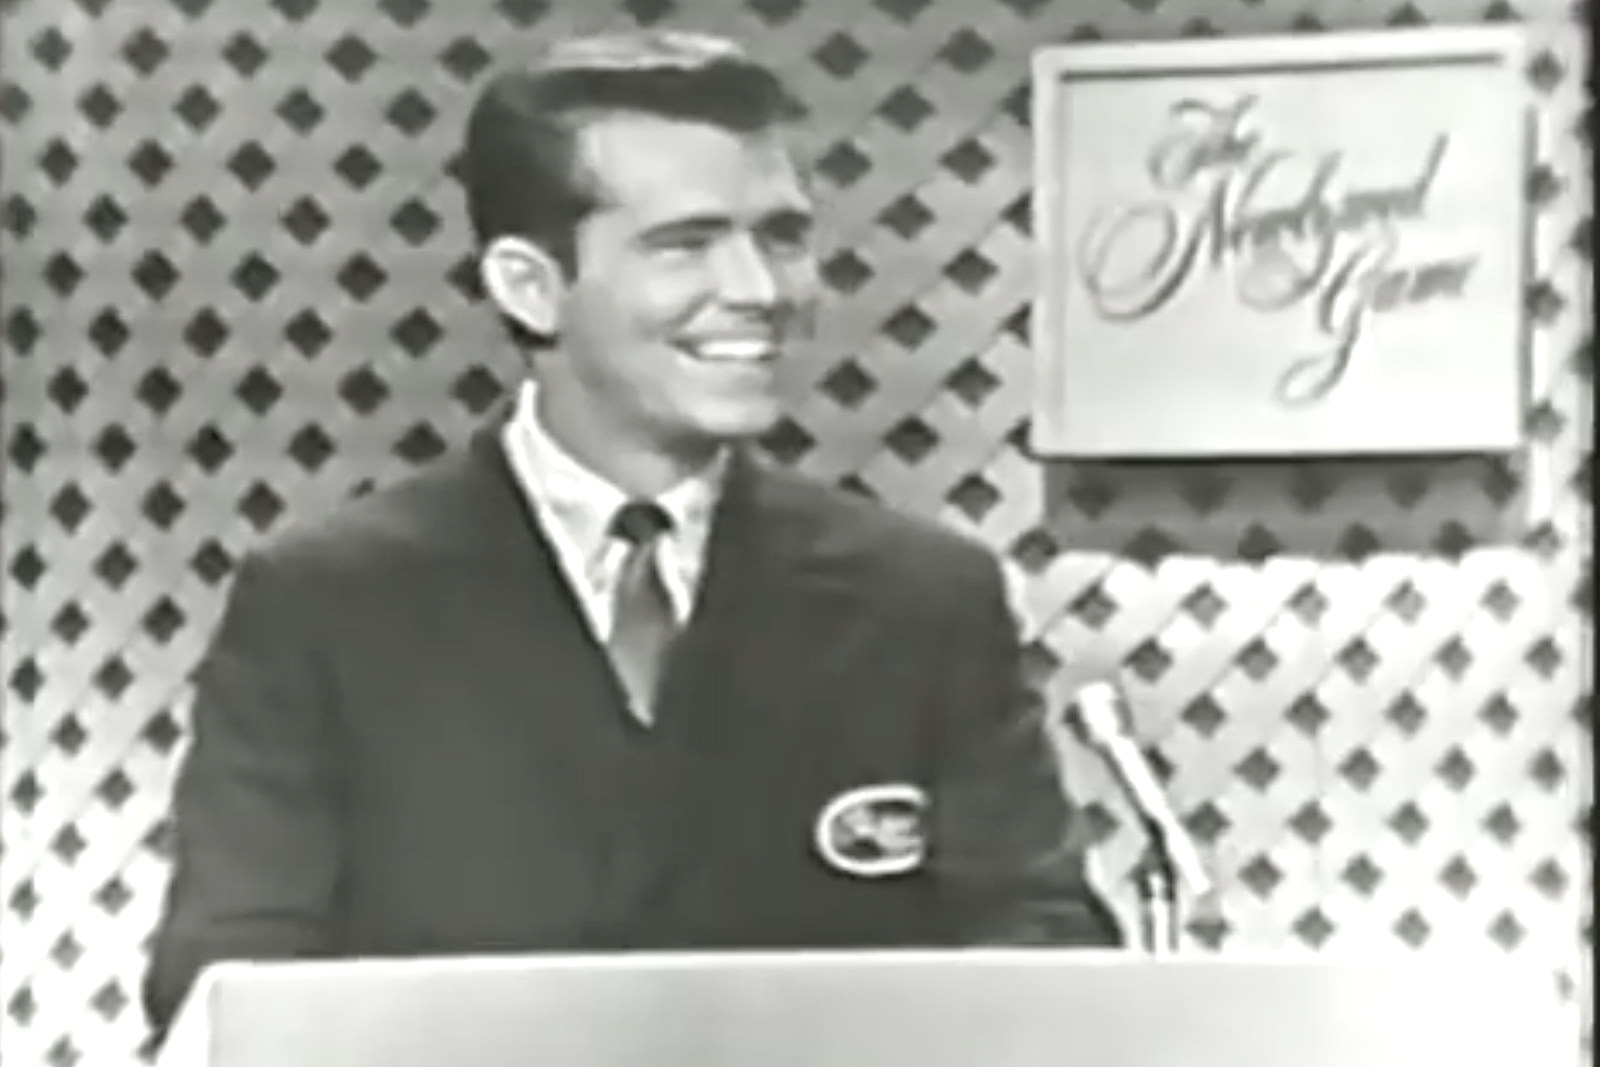 How 'Numb Nuts' Helped Launch 'The Newlywed Game'